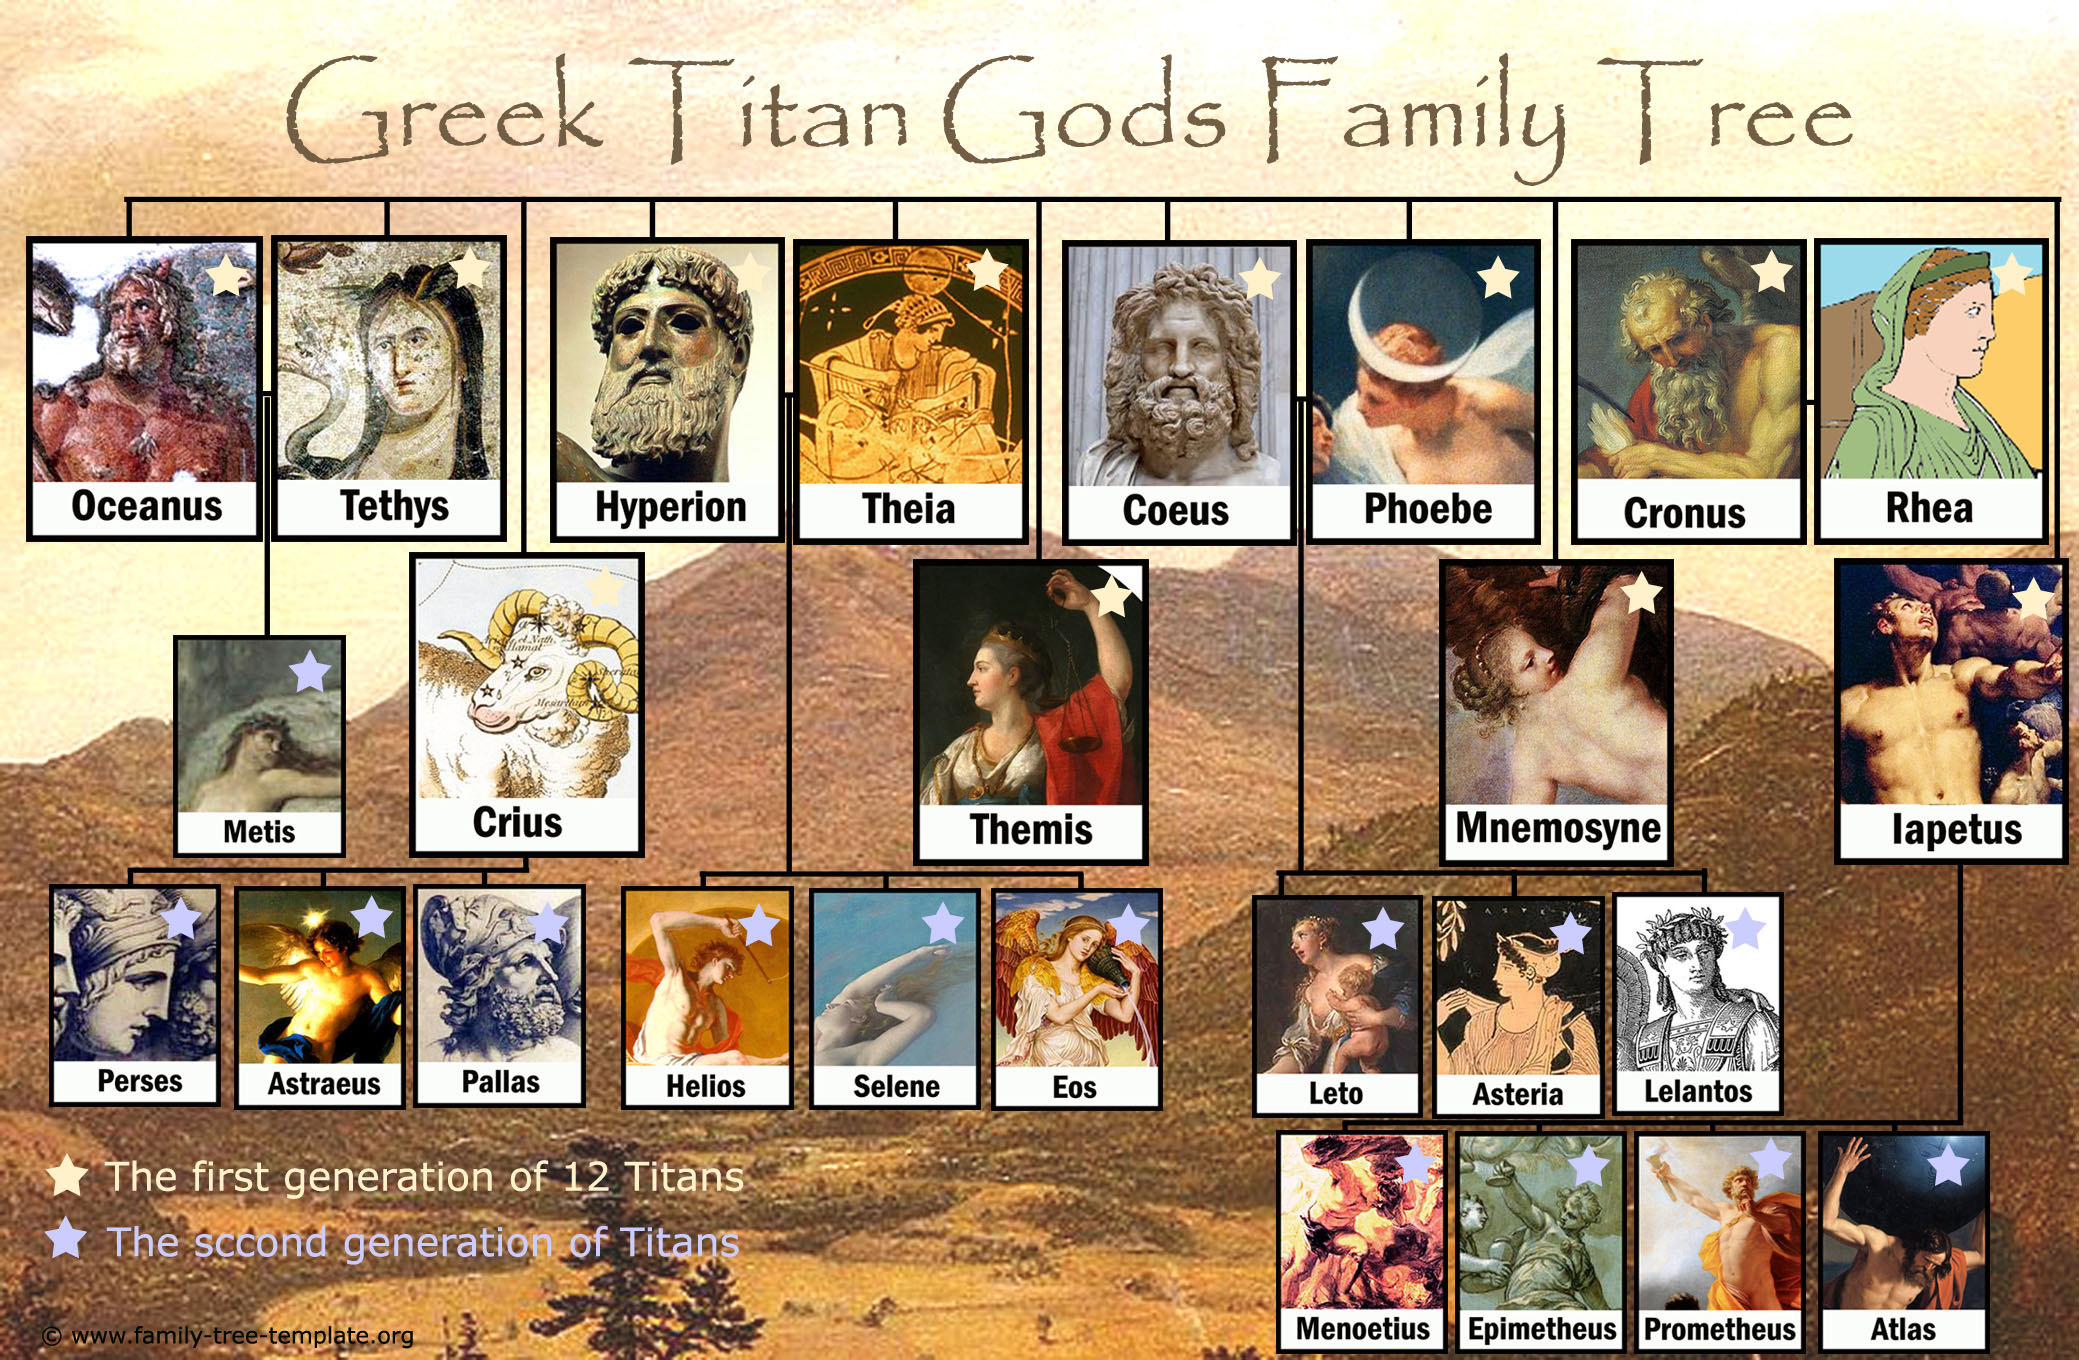 Printable family tree of the Greek gods Titans